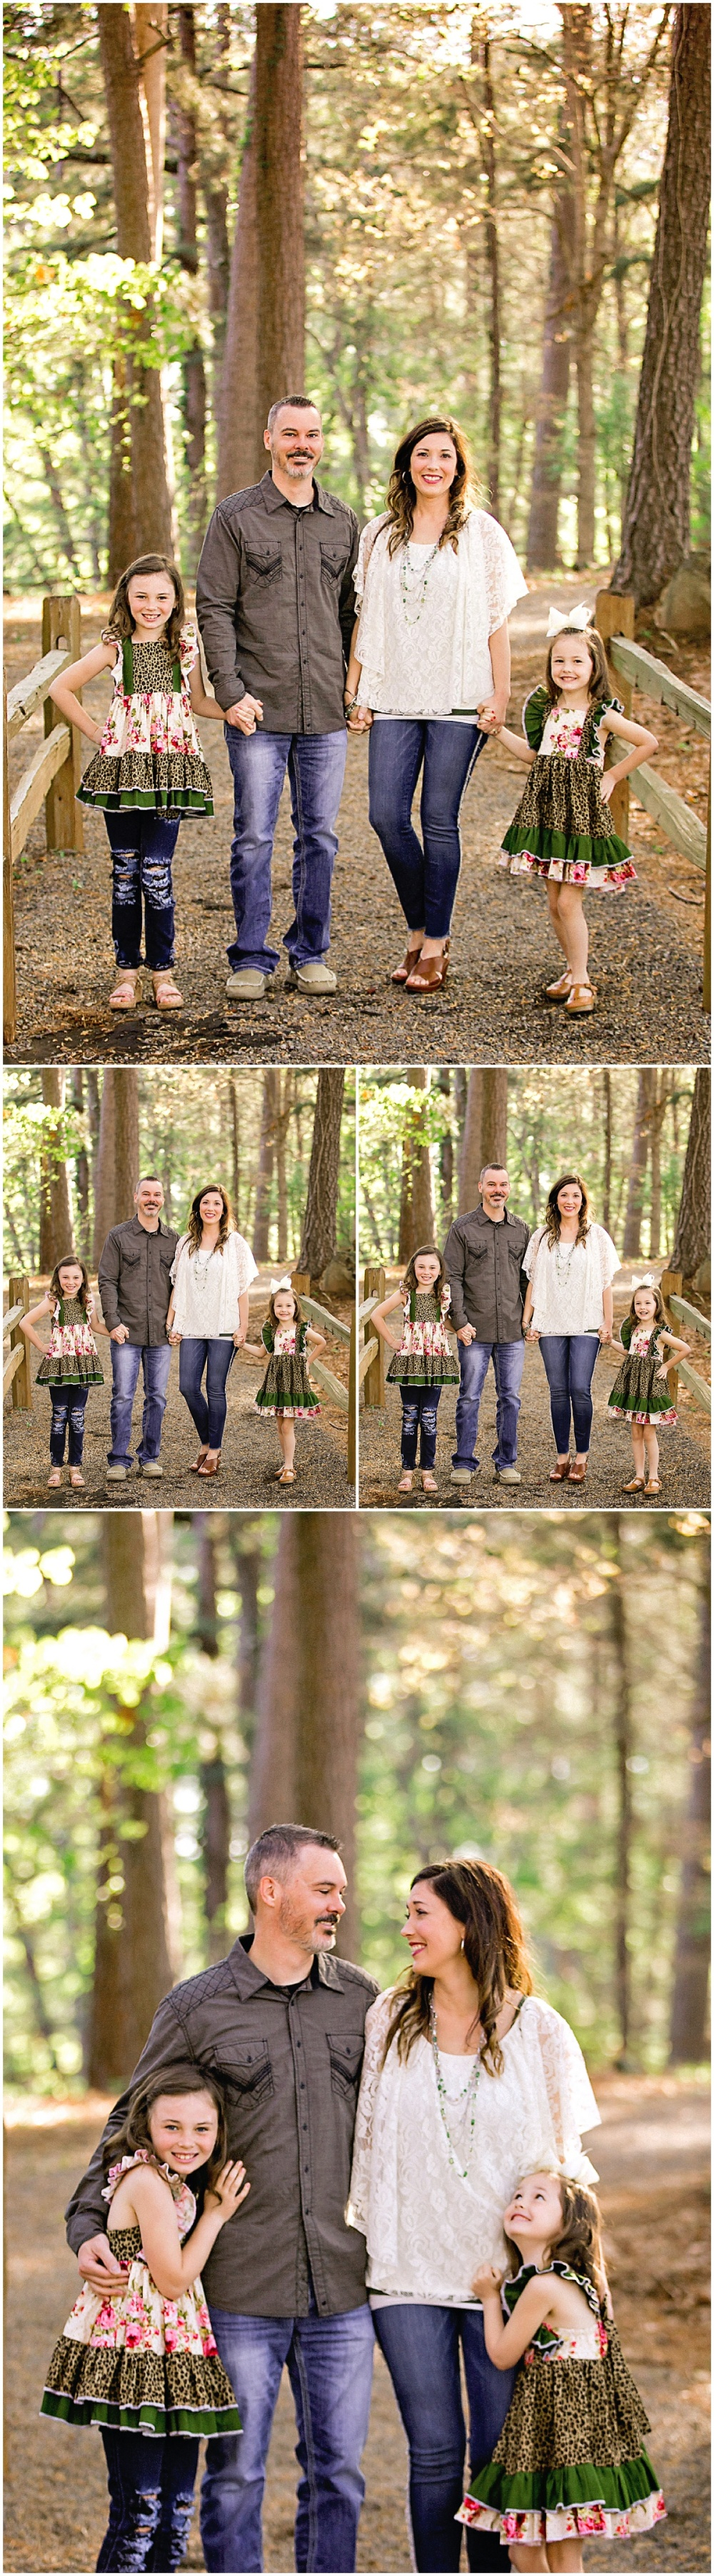 Family-Portraits-Spradlin-East-Texas-Carly-Barton-Photography_0031.jpg